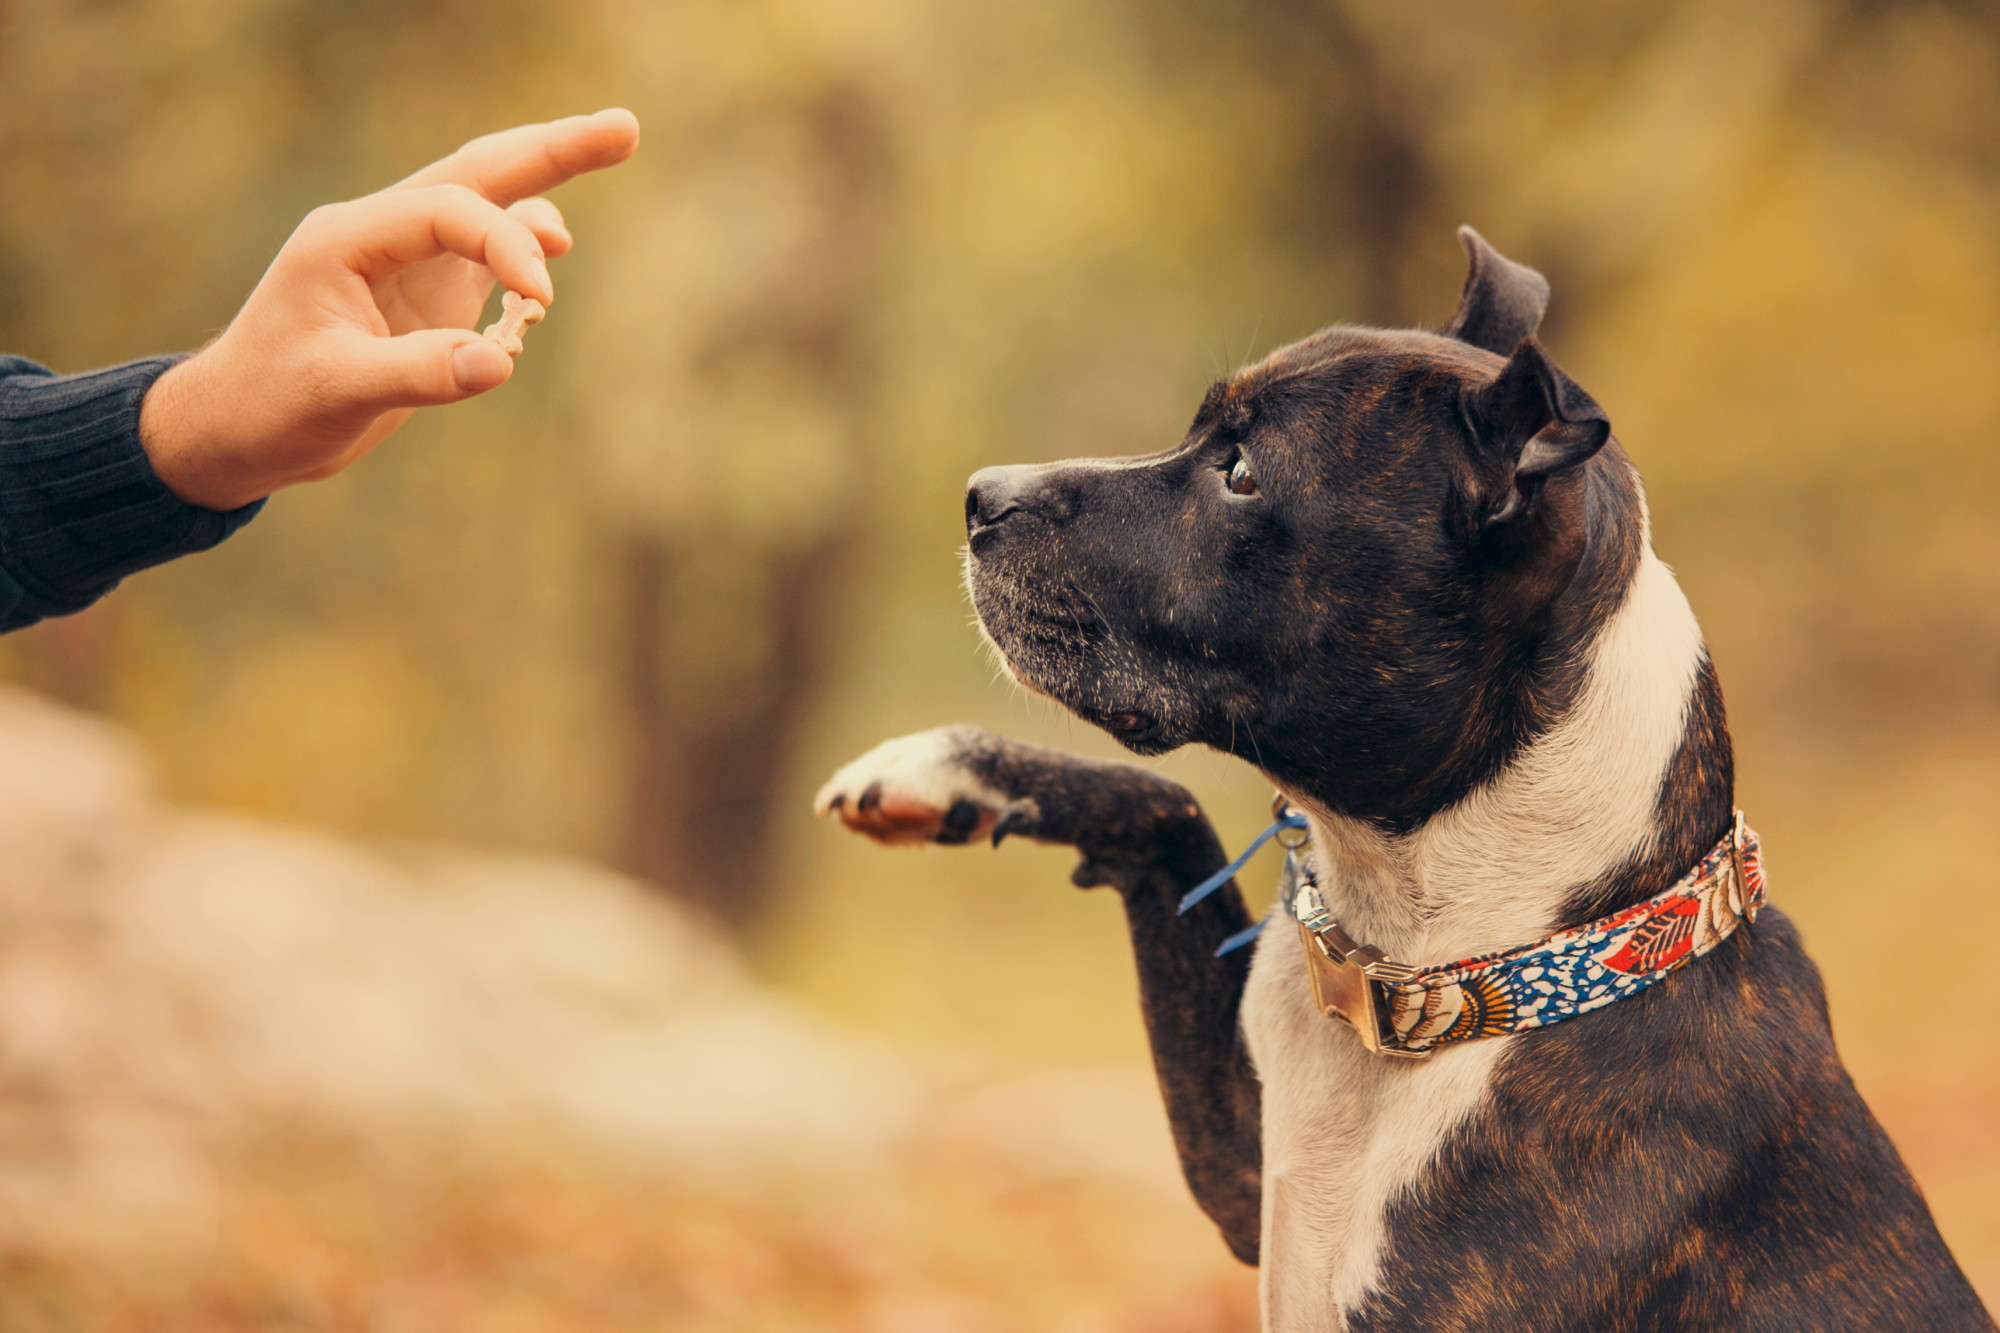 Picking for Your Pup: How to Choose the Best Collar for Dogs